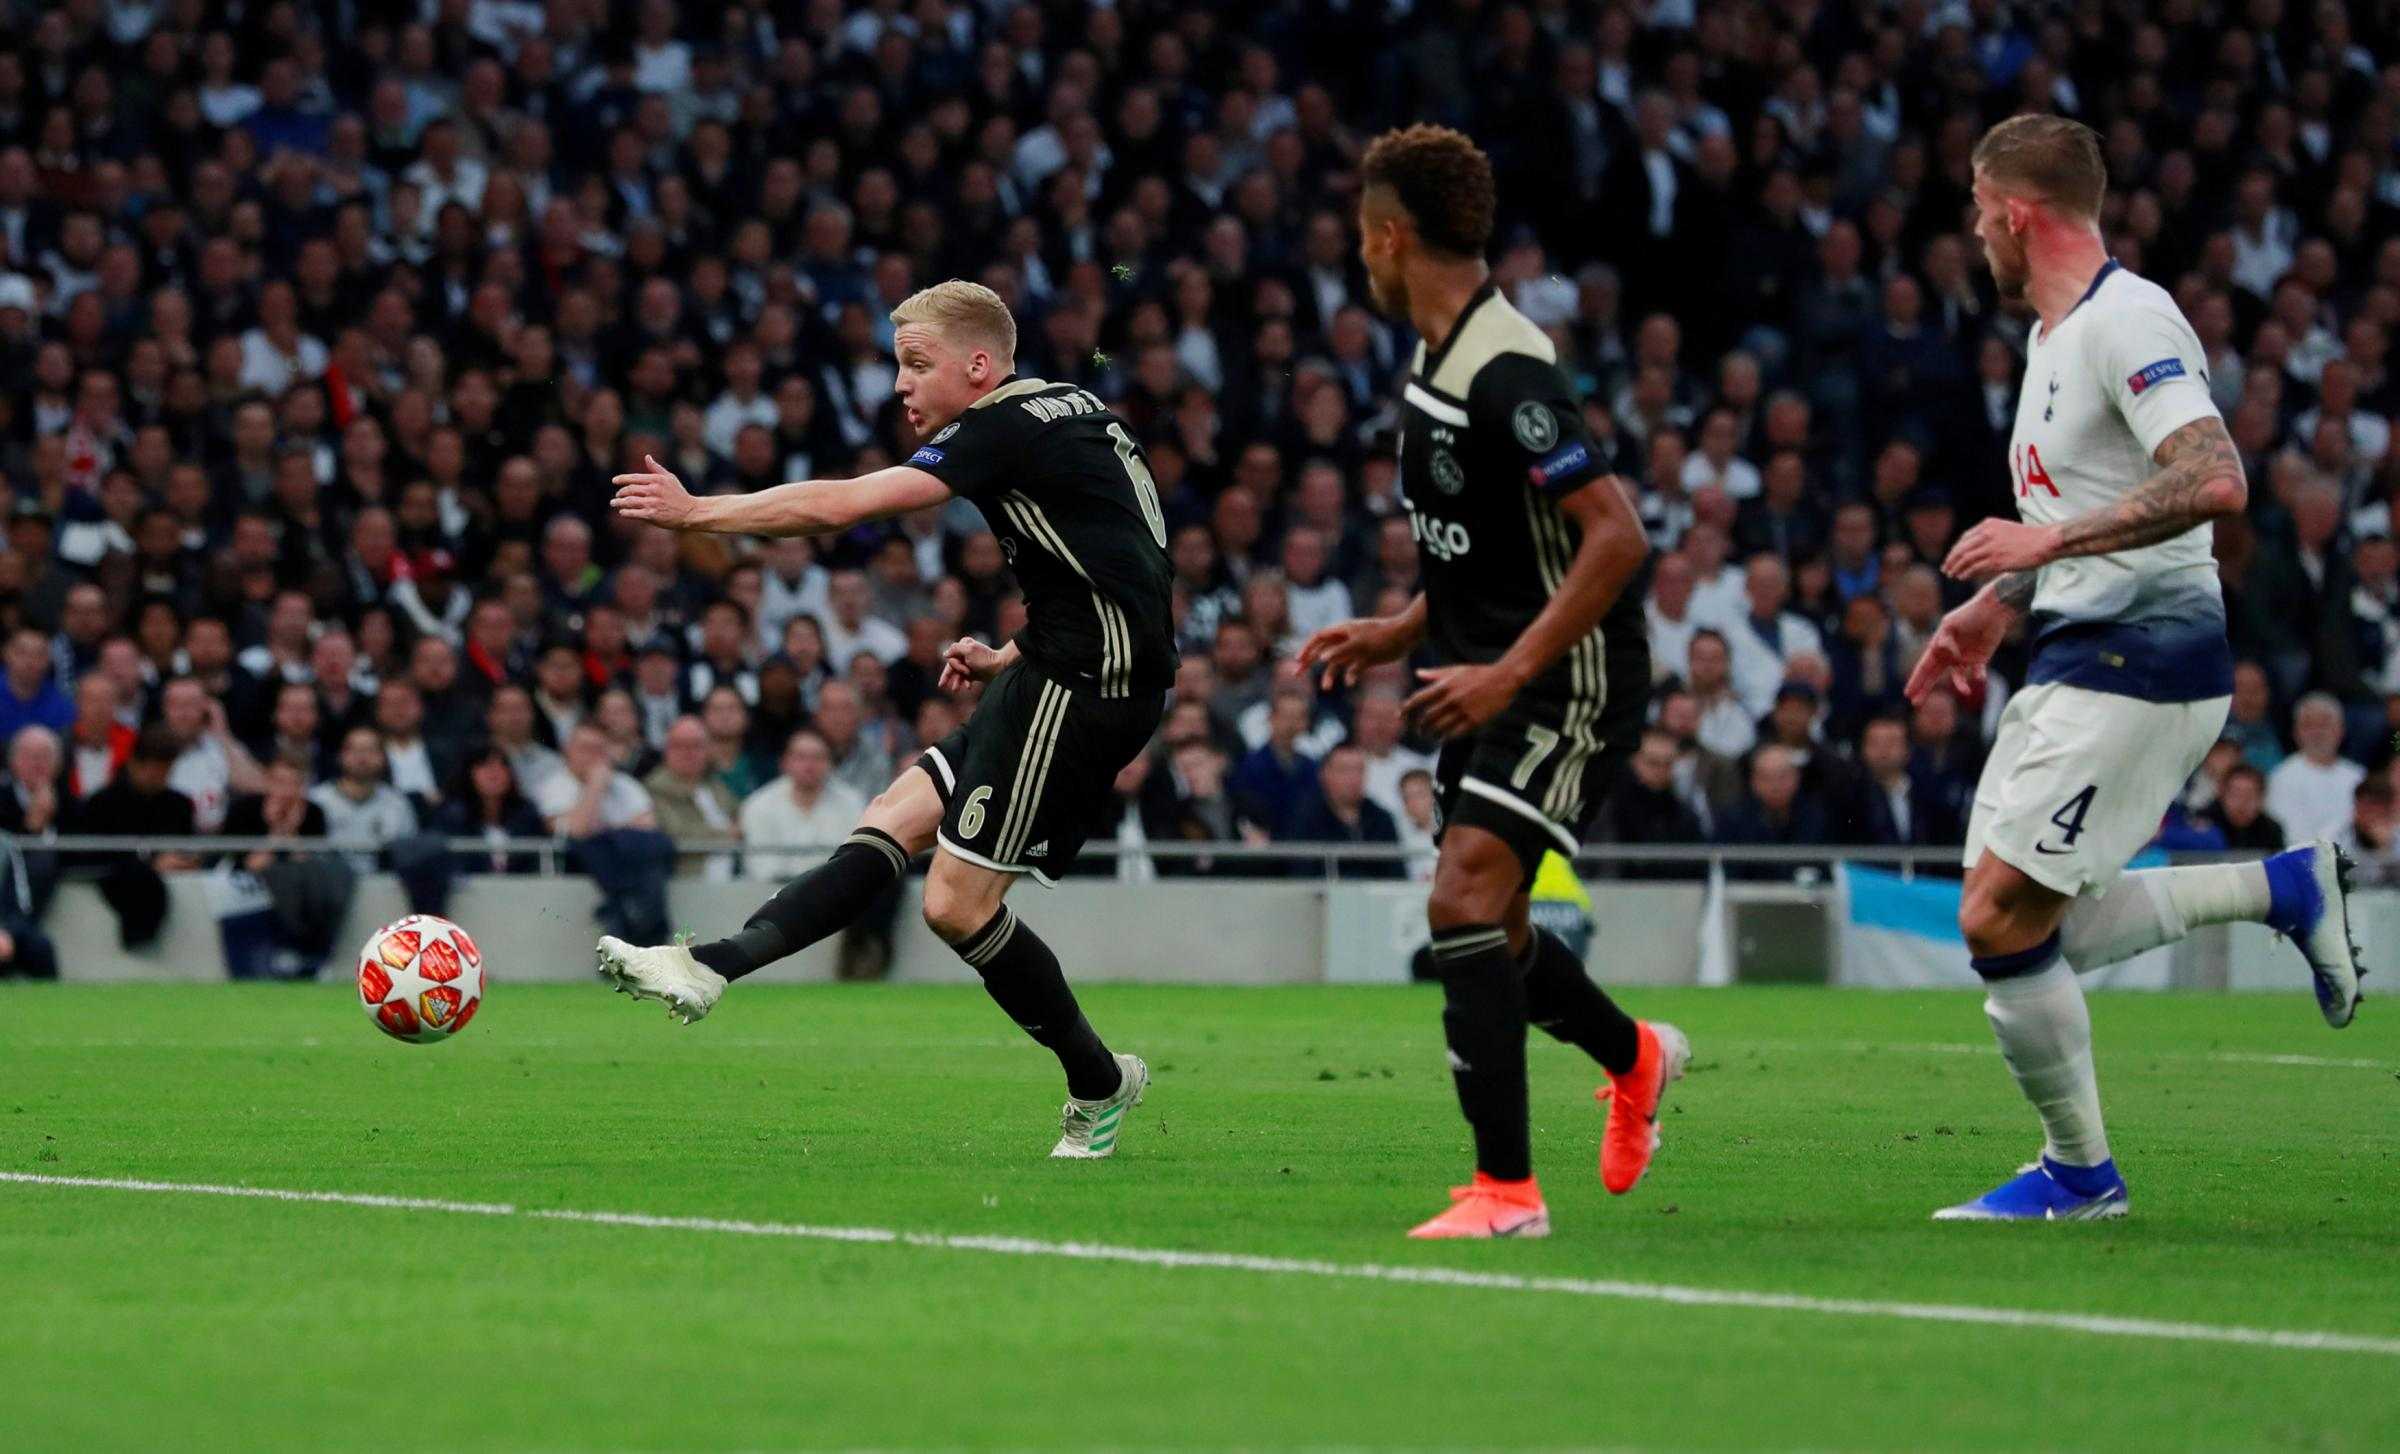 Tottenham lost to Ajax in the Champions League. Picture: Action Images